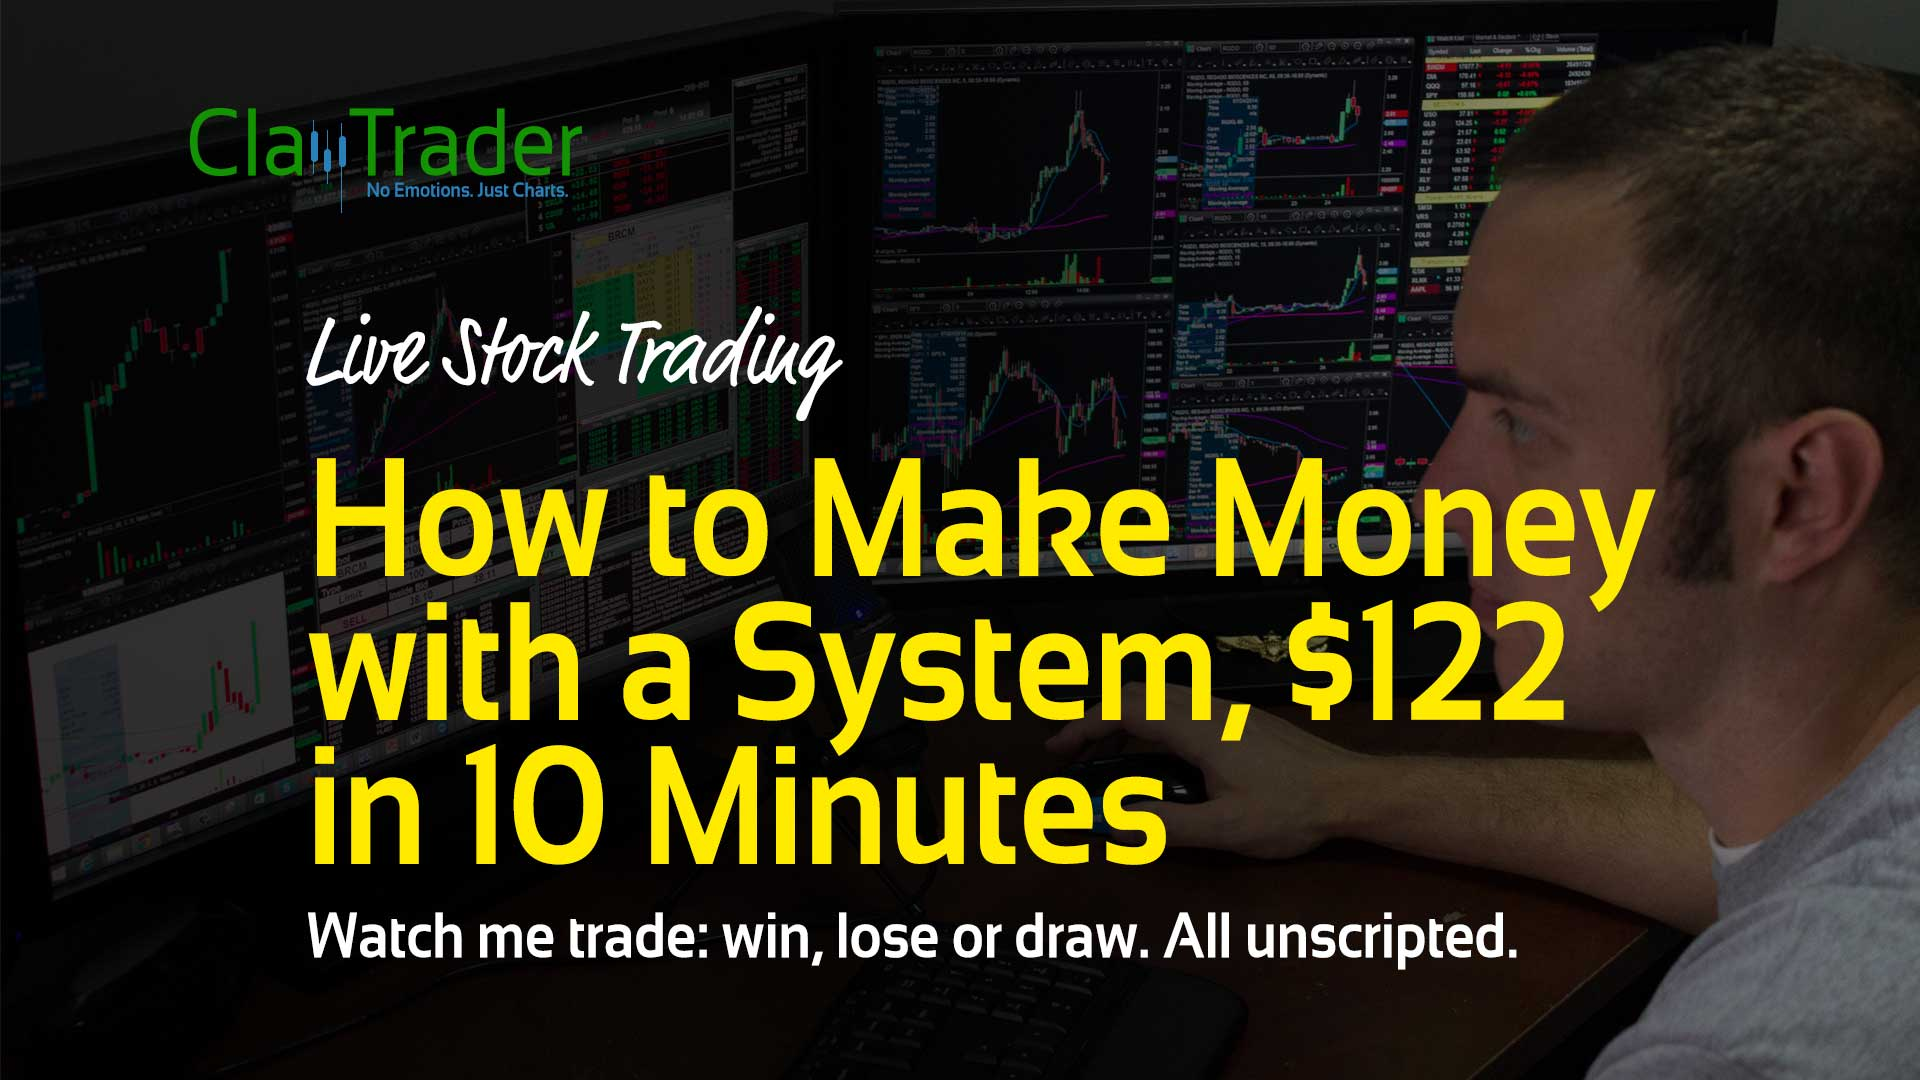 Trading stocks for a living